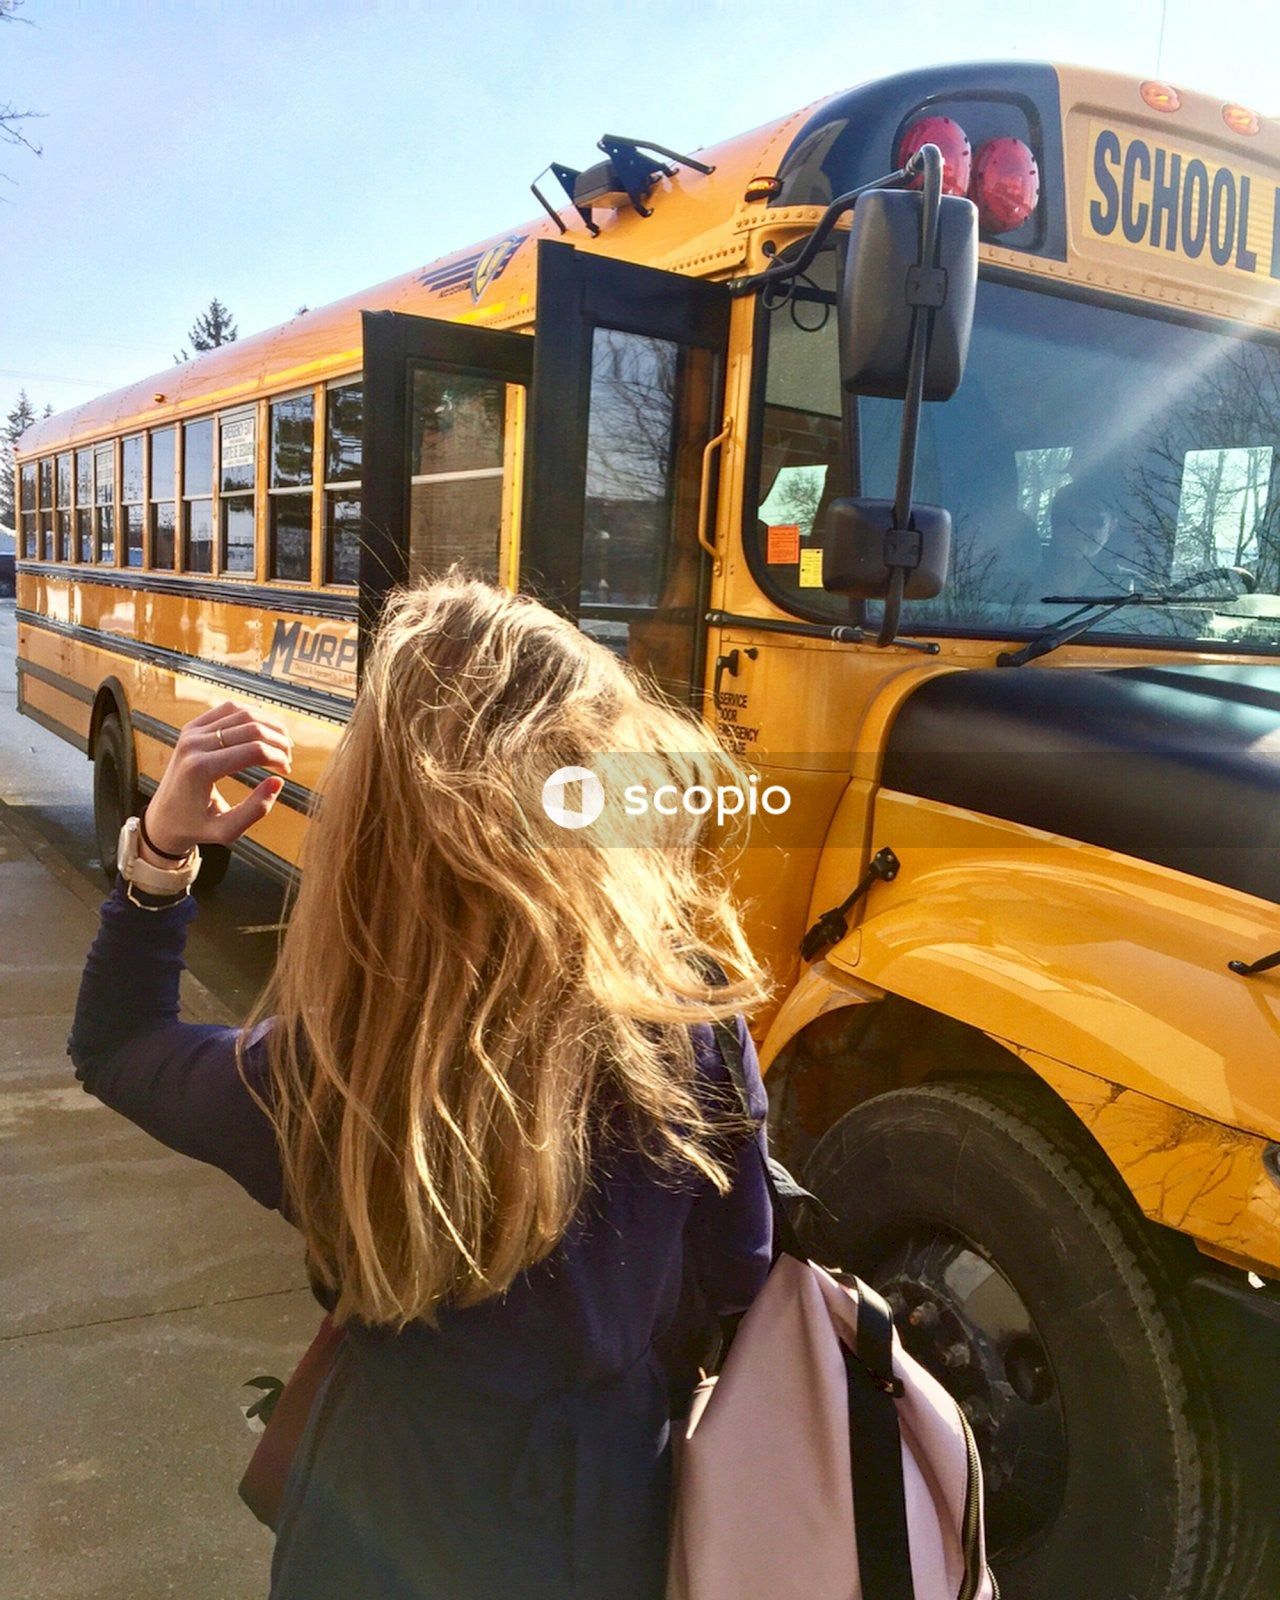 Woman in black jacket standing near yellow bus